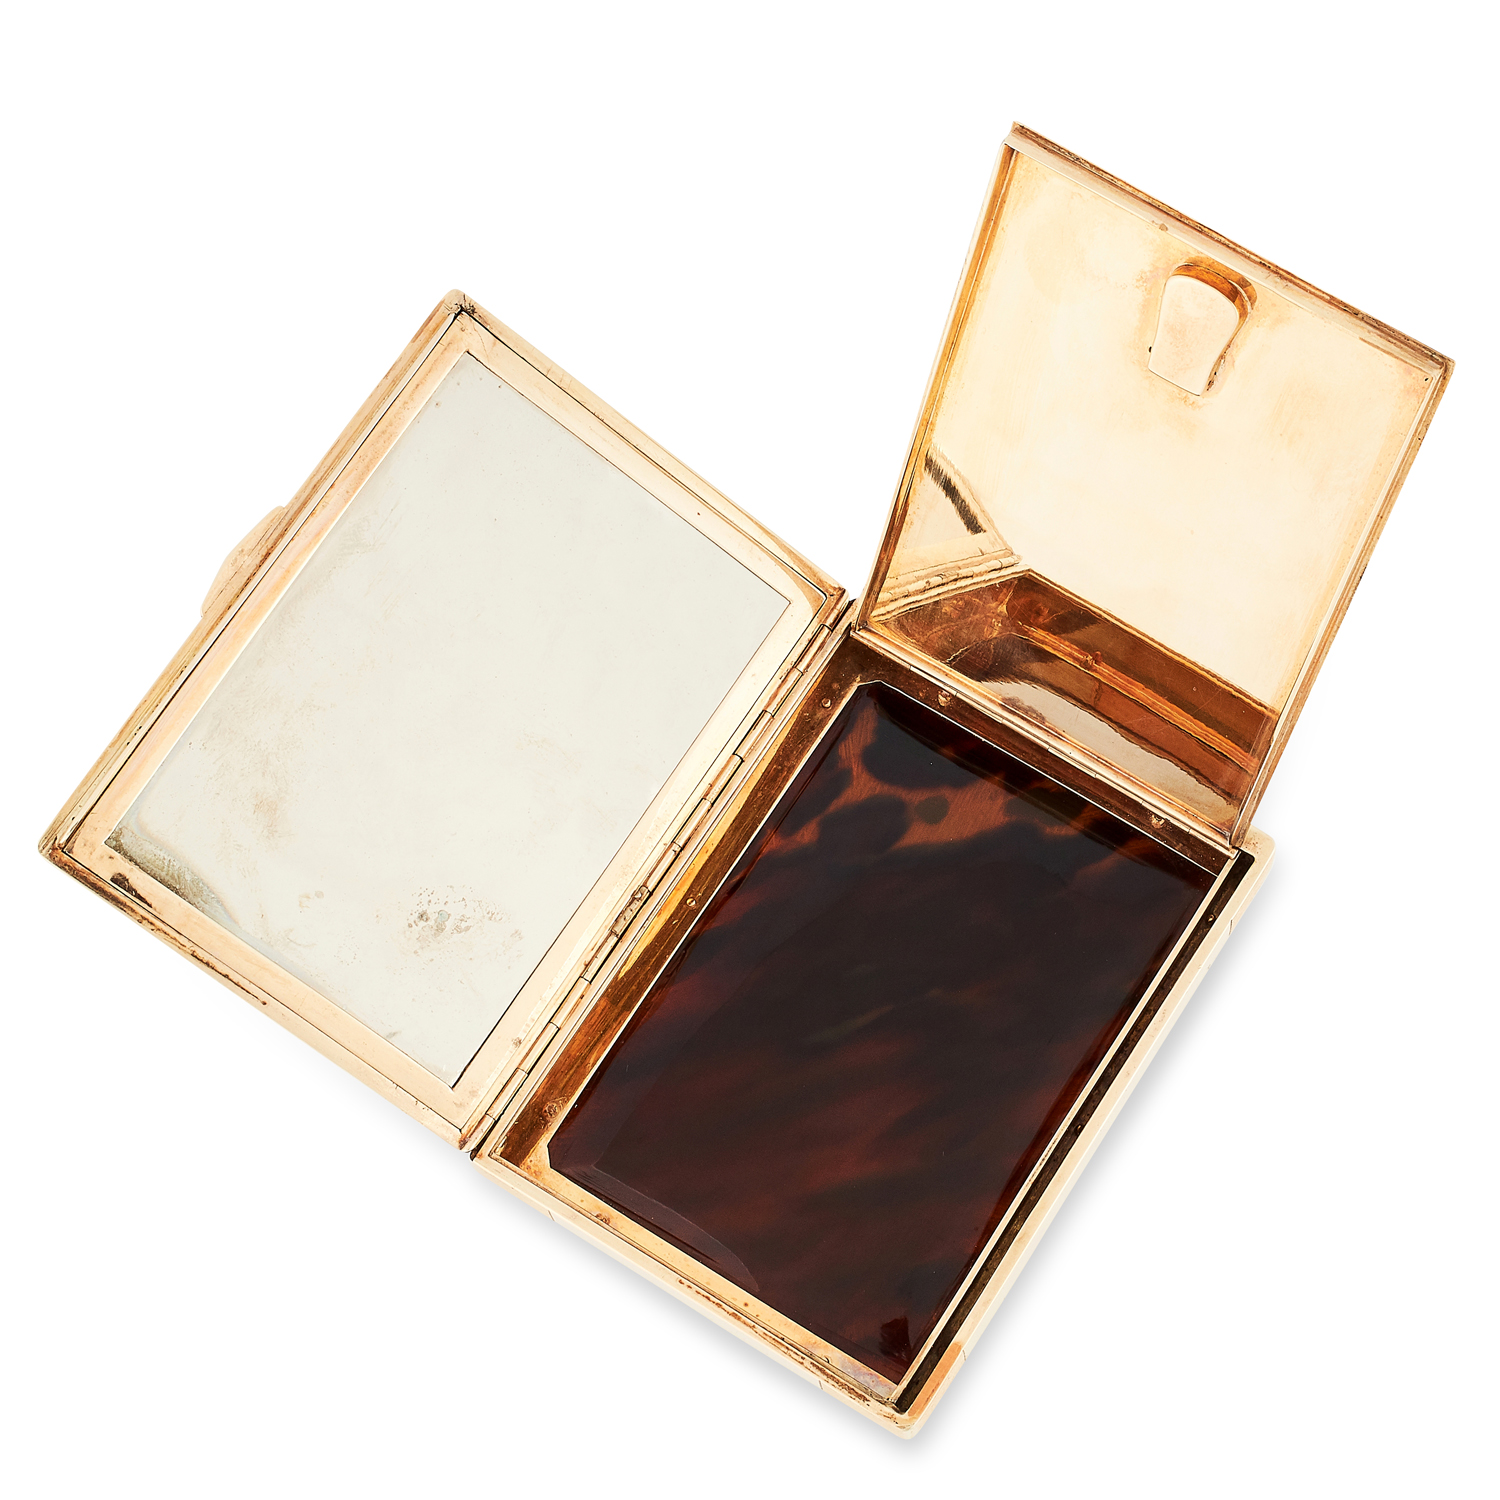 AN ANTIQUE LACQUE BURGAUTÉ CHINOISERIE VANITY CASE, CARTIER CIRCA 1920 in high carat yellow gold, of - Image 3 of 3